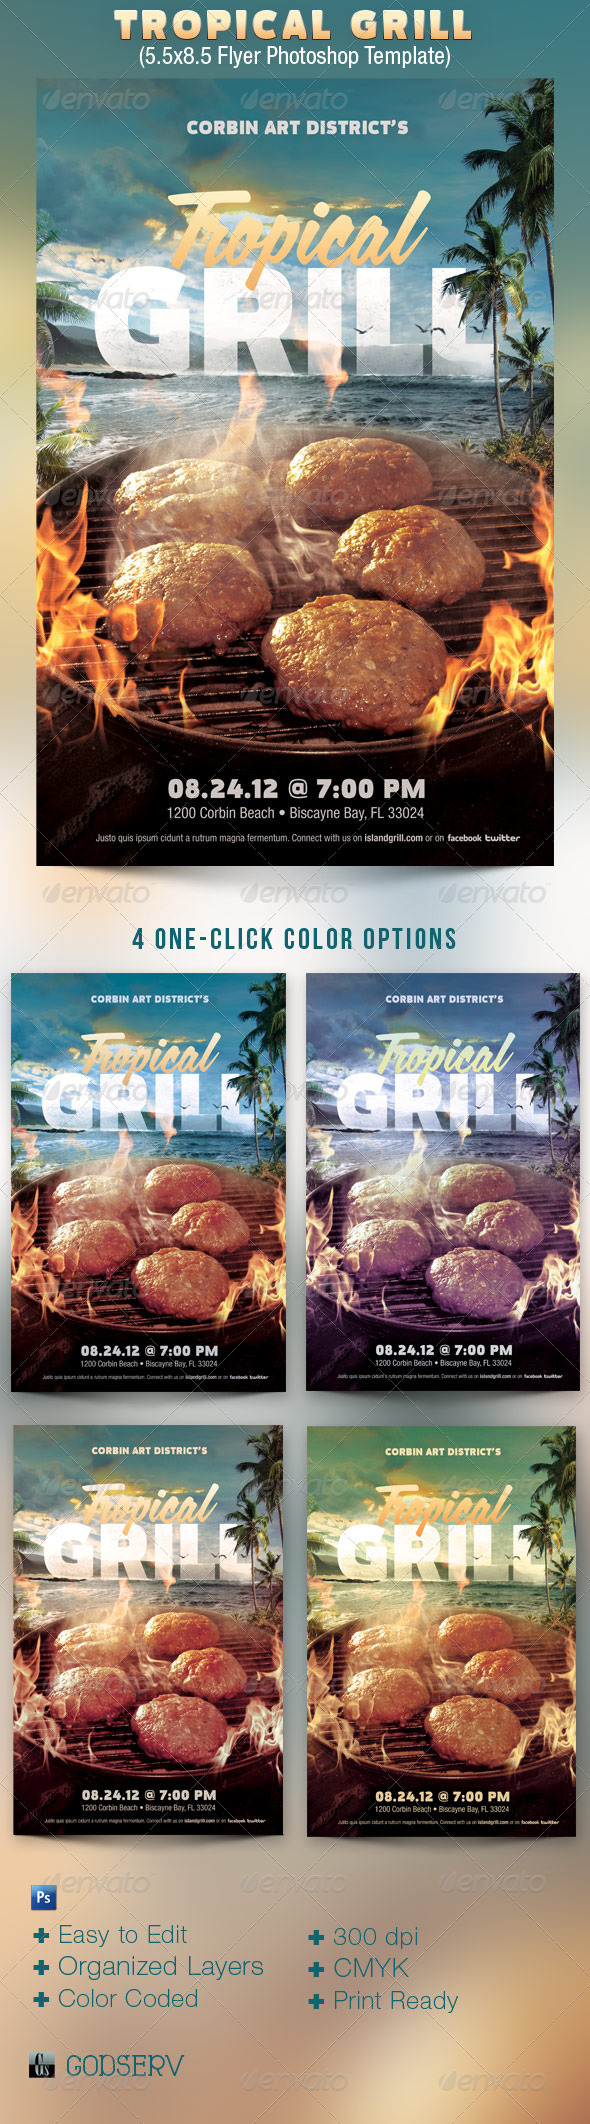 Tropical Grill Flyer Template - Events Flyers